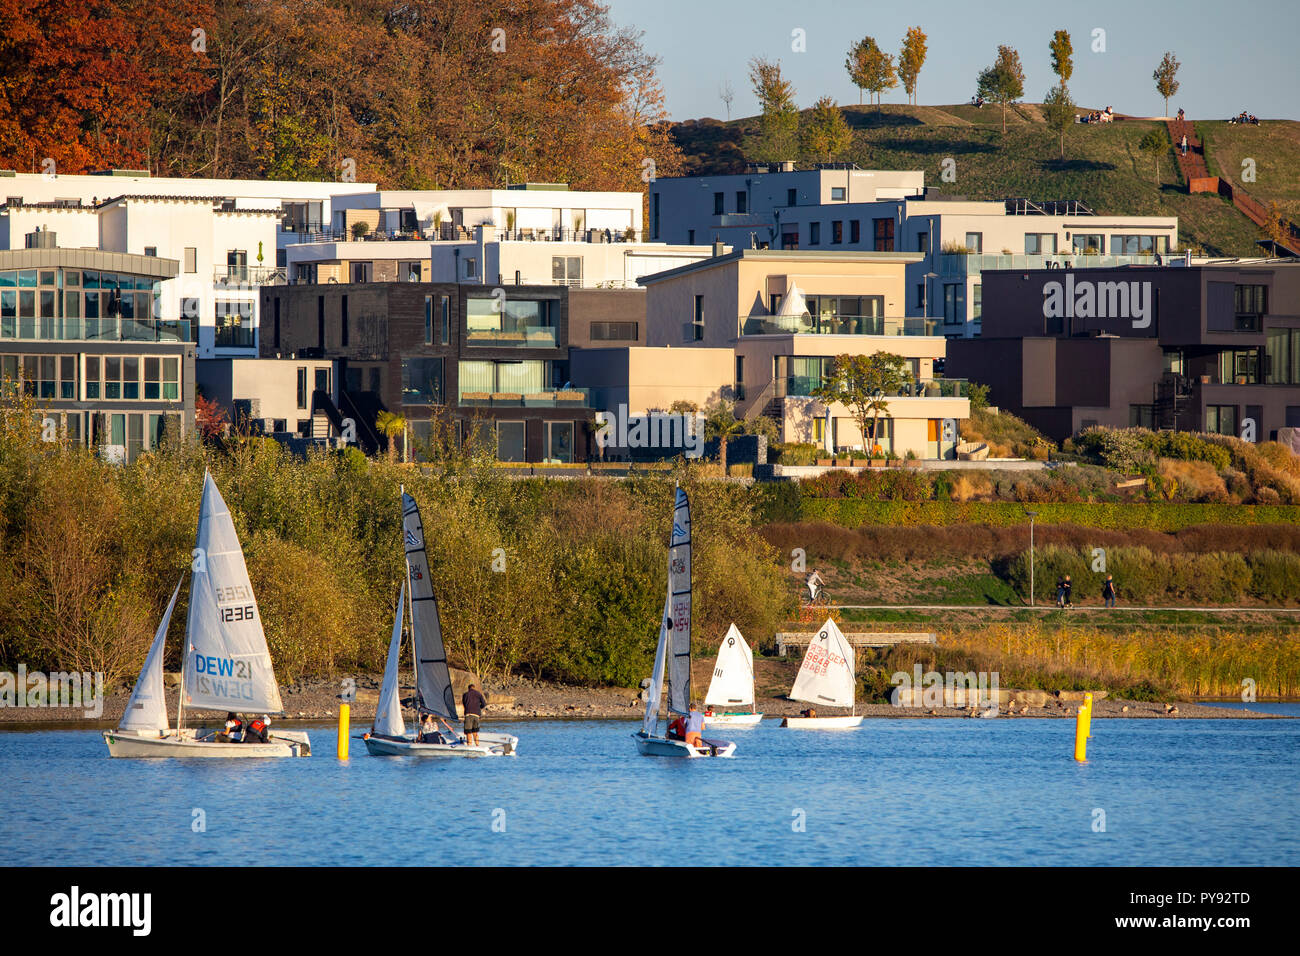 The Phoenix Lake in Dortmund district Hšrde, an artificial lake on the former steel plant Phoenix-East, residential development, recreational area, ga - Stock Image